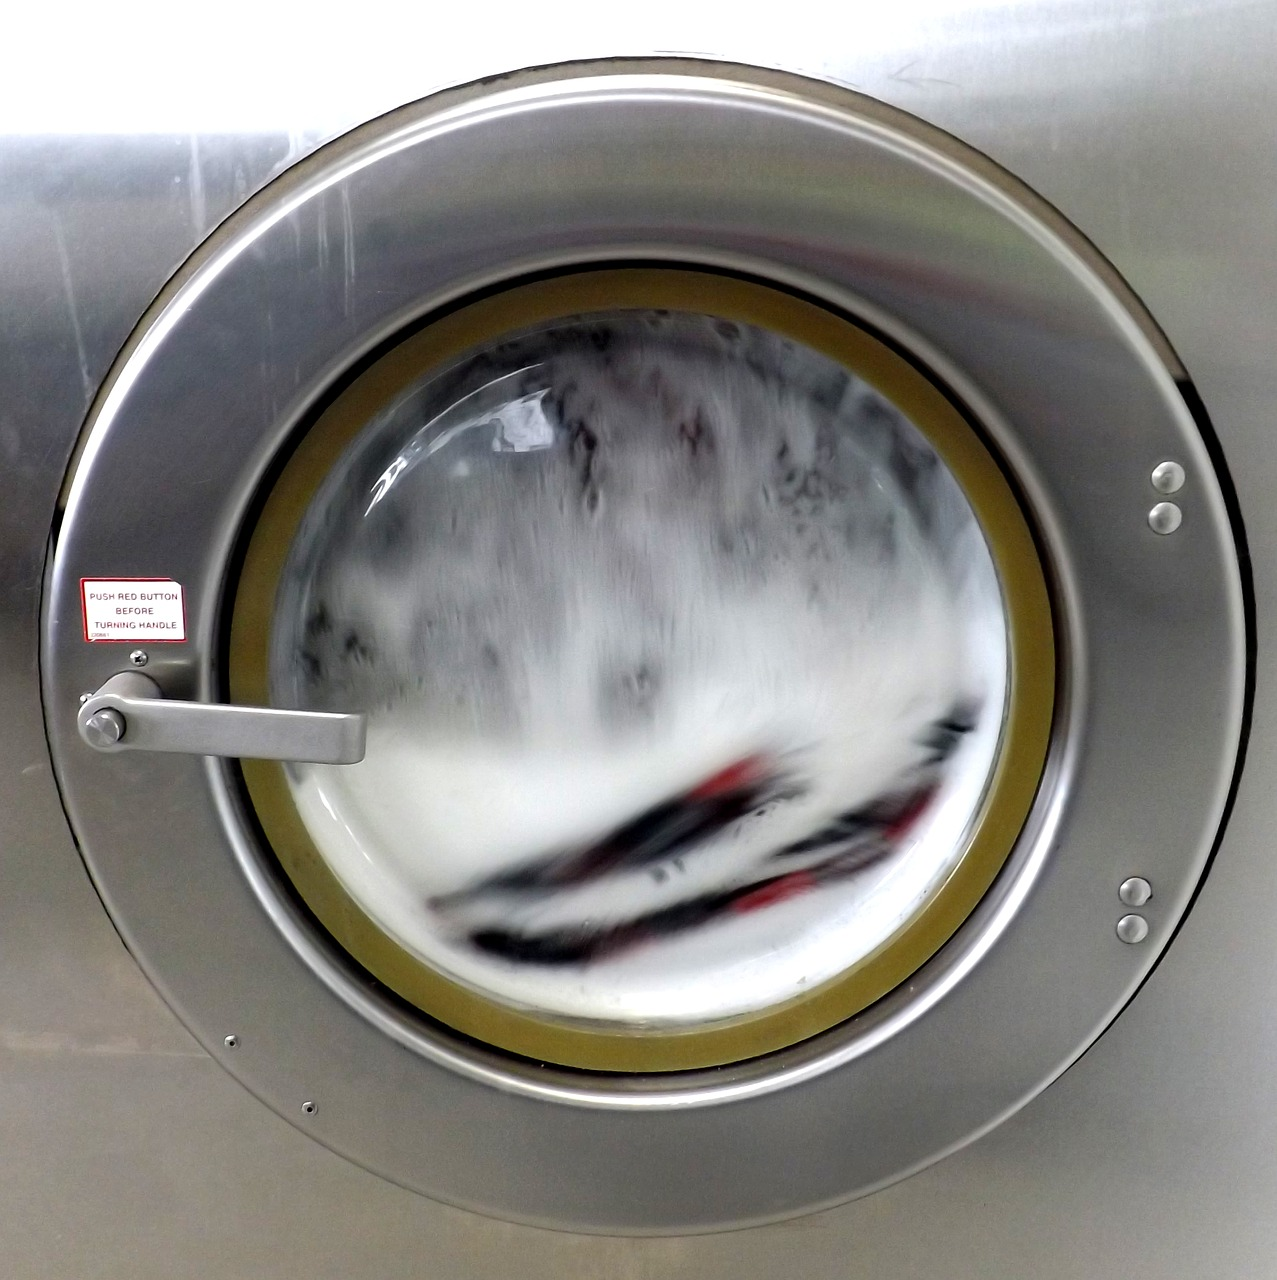 laundromat washing machine soap free photo